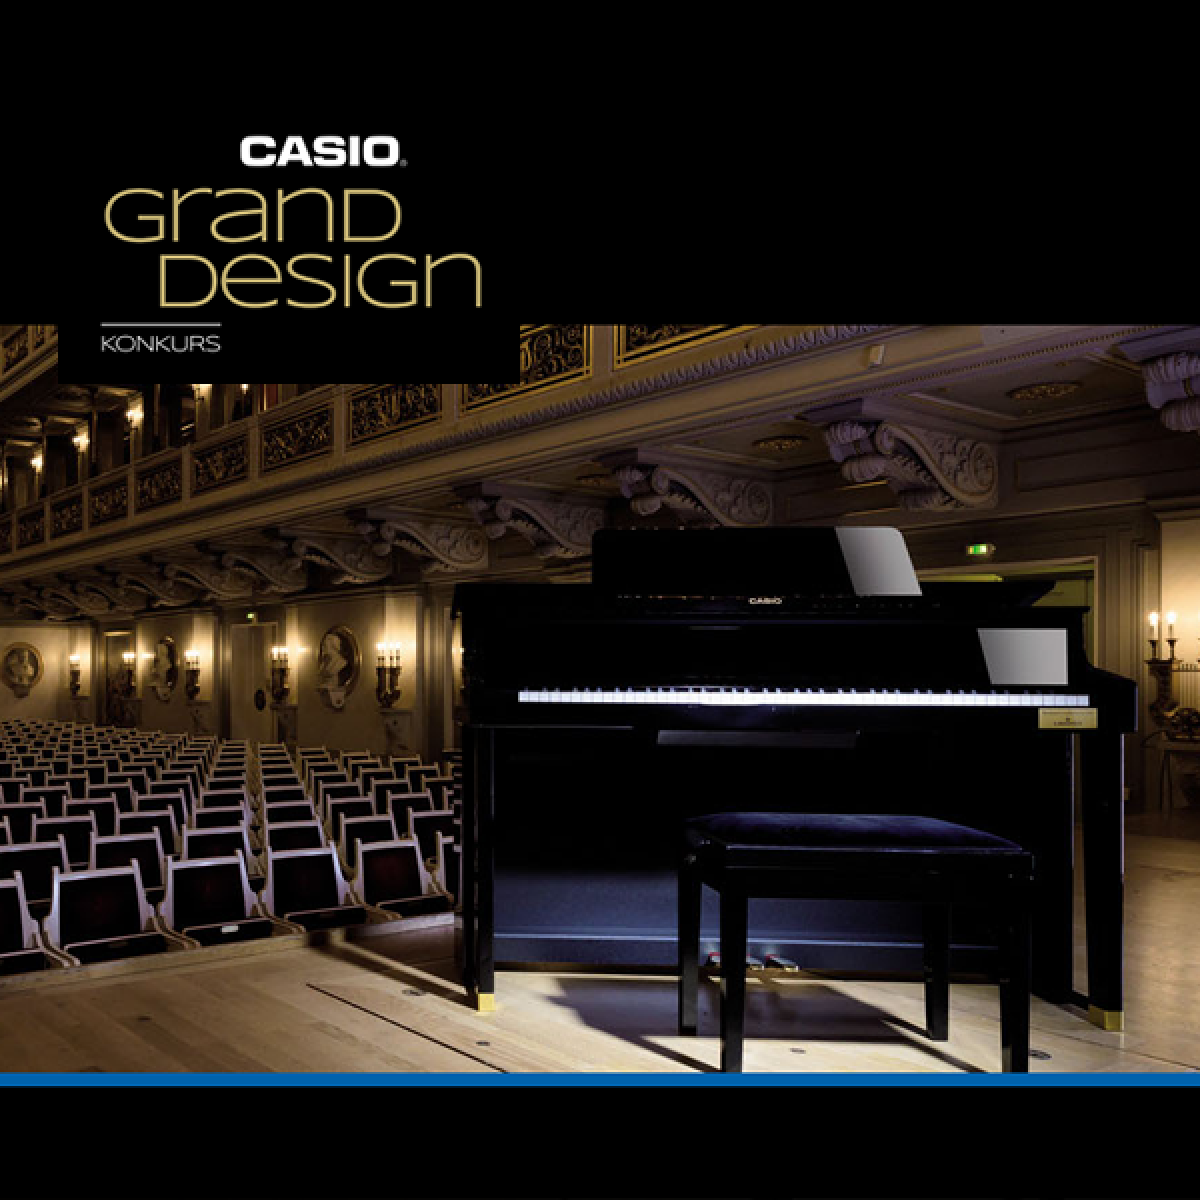 Casio Grand Design